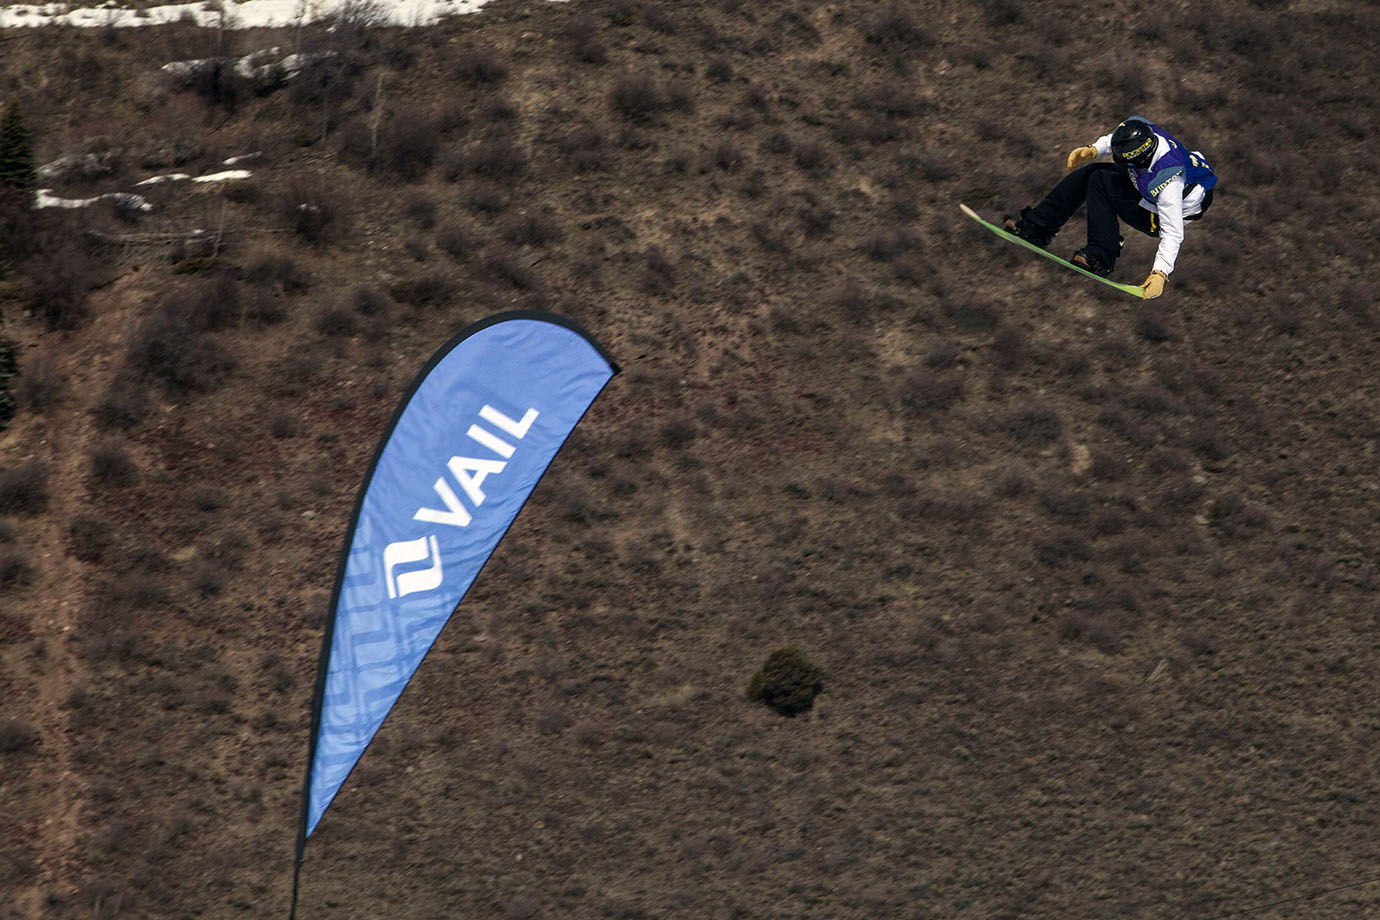 Men's Slopestyle winner Kyle Mack put an exclamation point on his breakout season. He debuted at X Games Aspen and took part in all three Air+Style tour stops, winning 2nd place in L.A. He can now add Burton U.S. Open champ to that list.